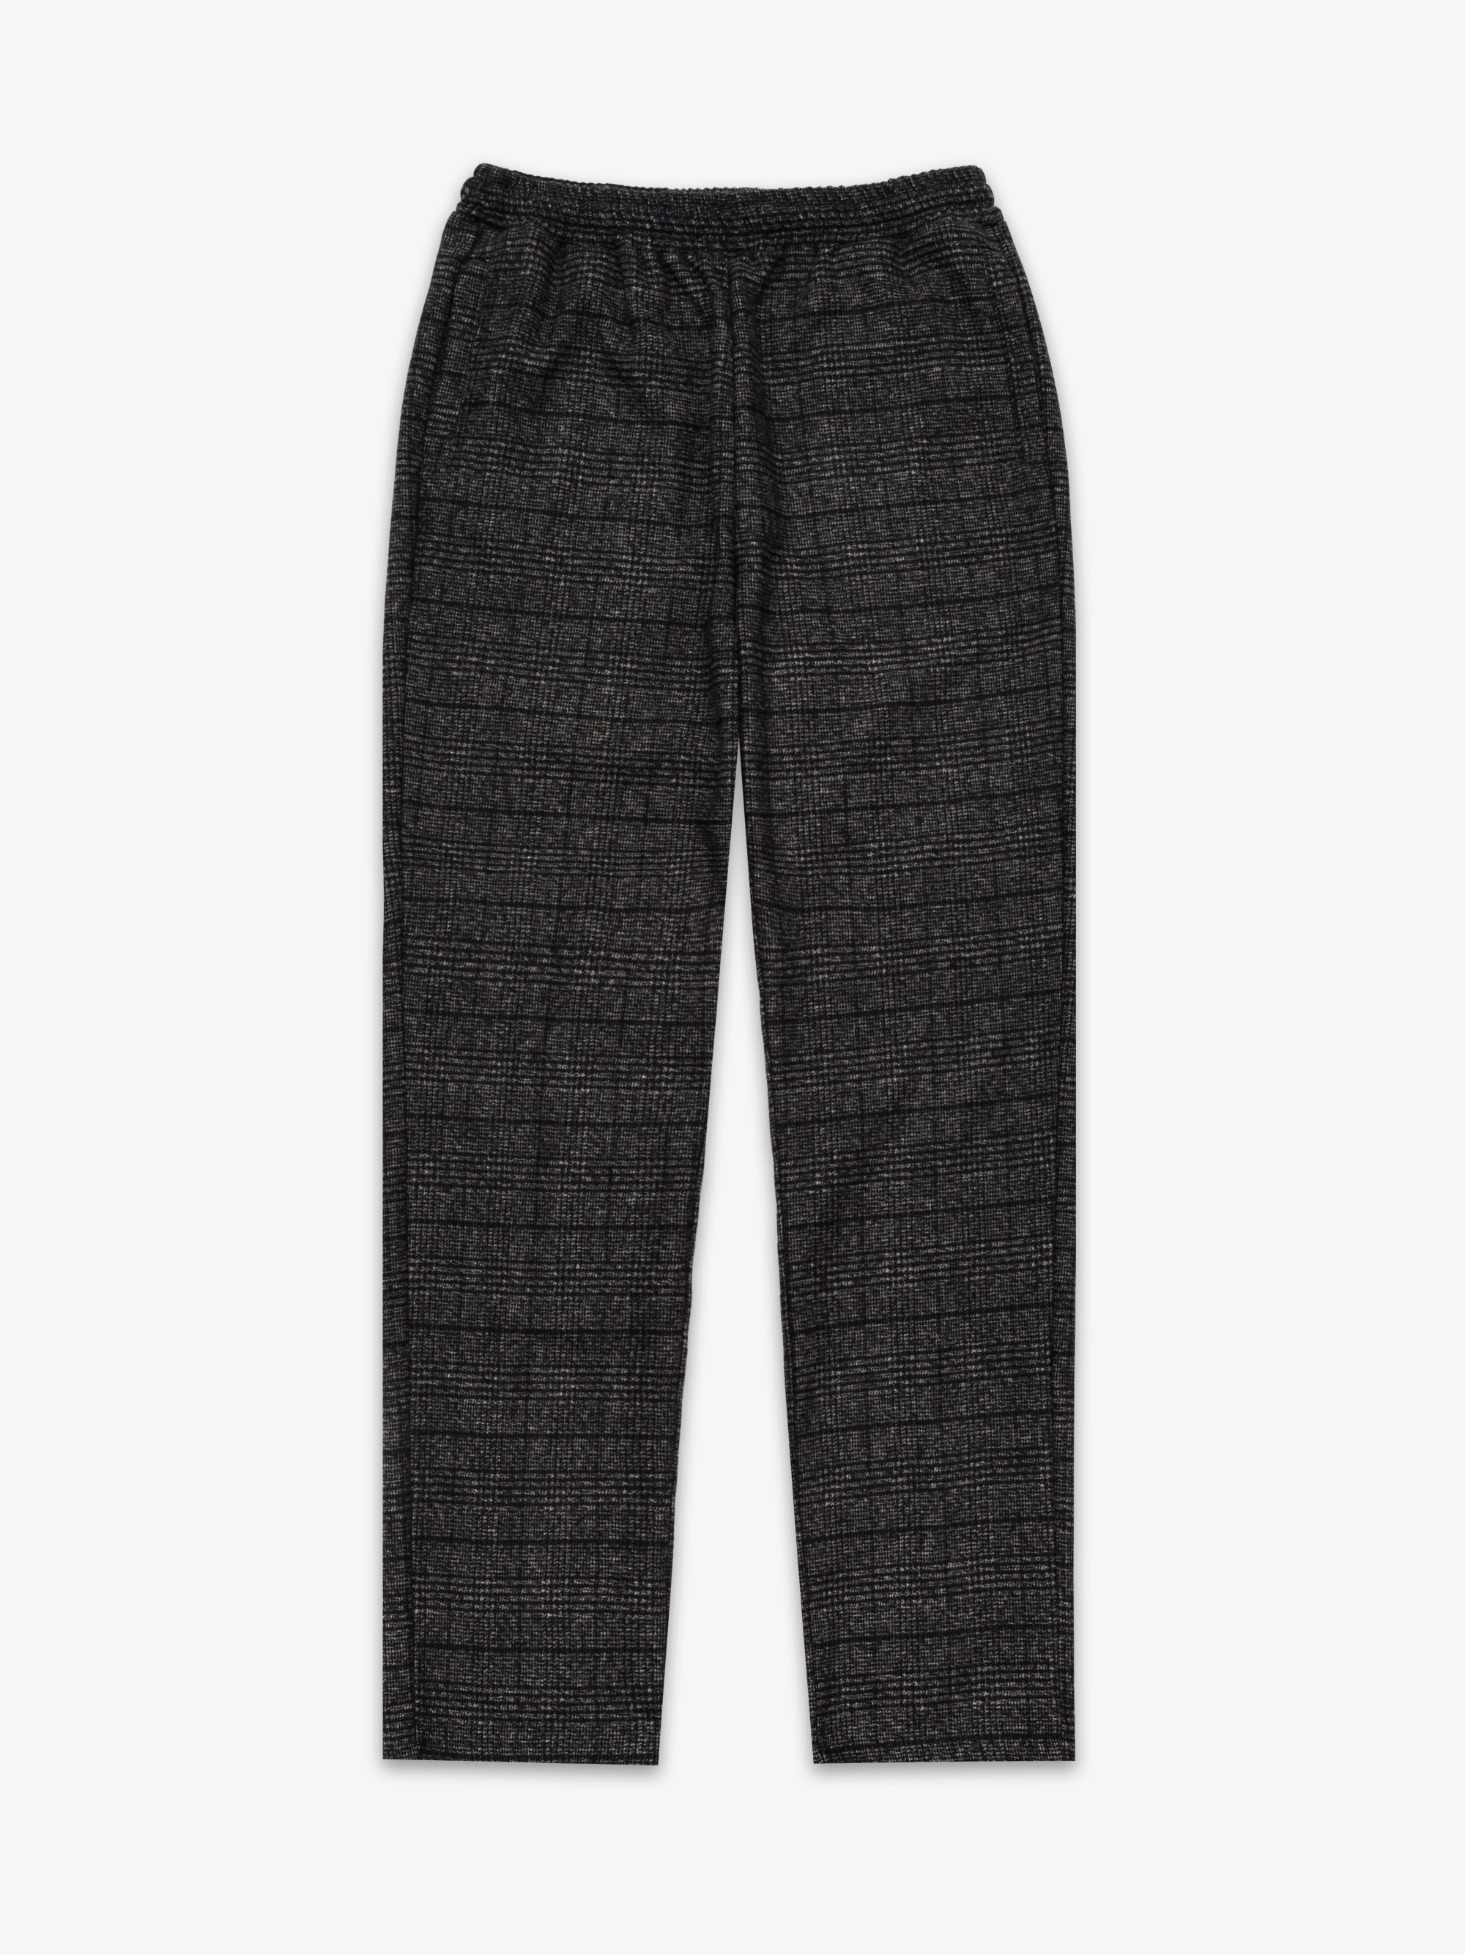 3-DIMENSIONAL PANTS(WOOL CHECK)